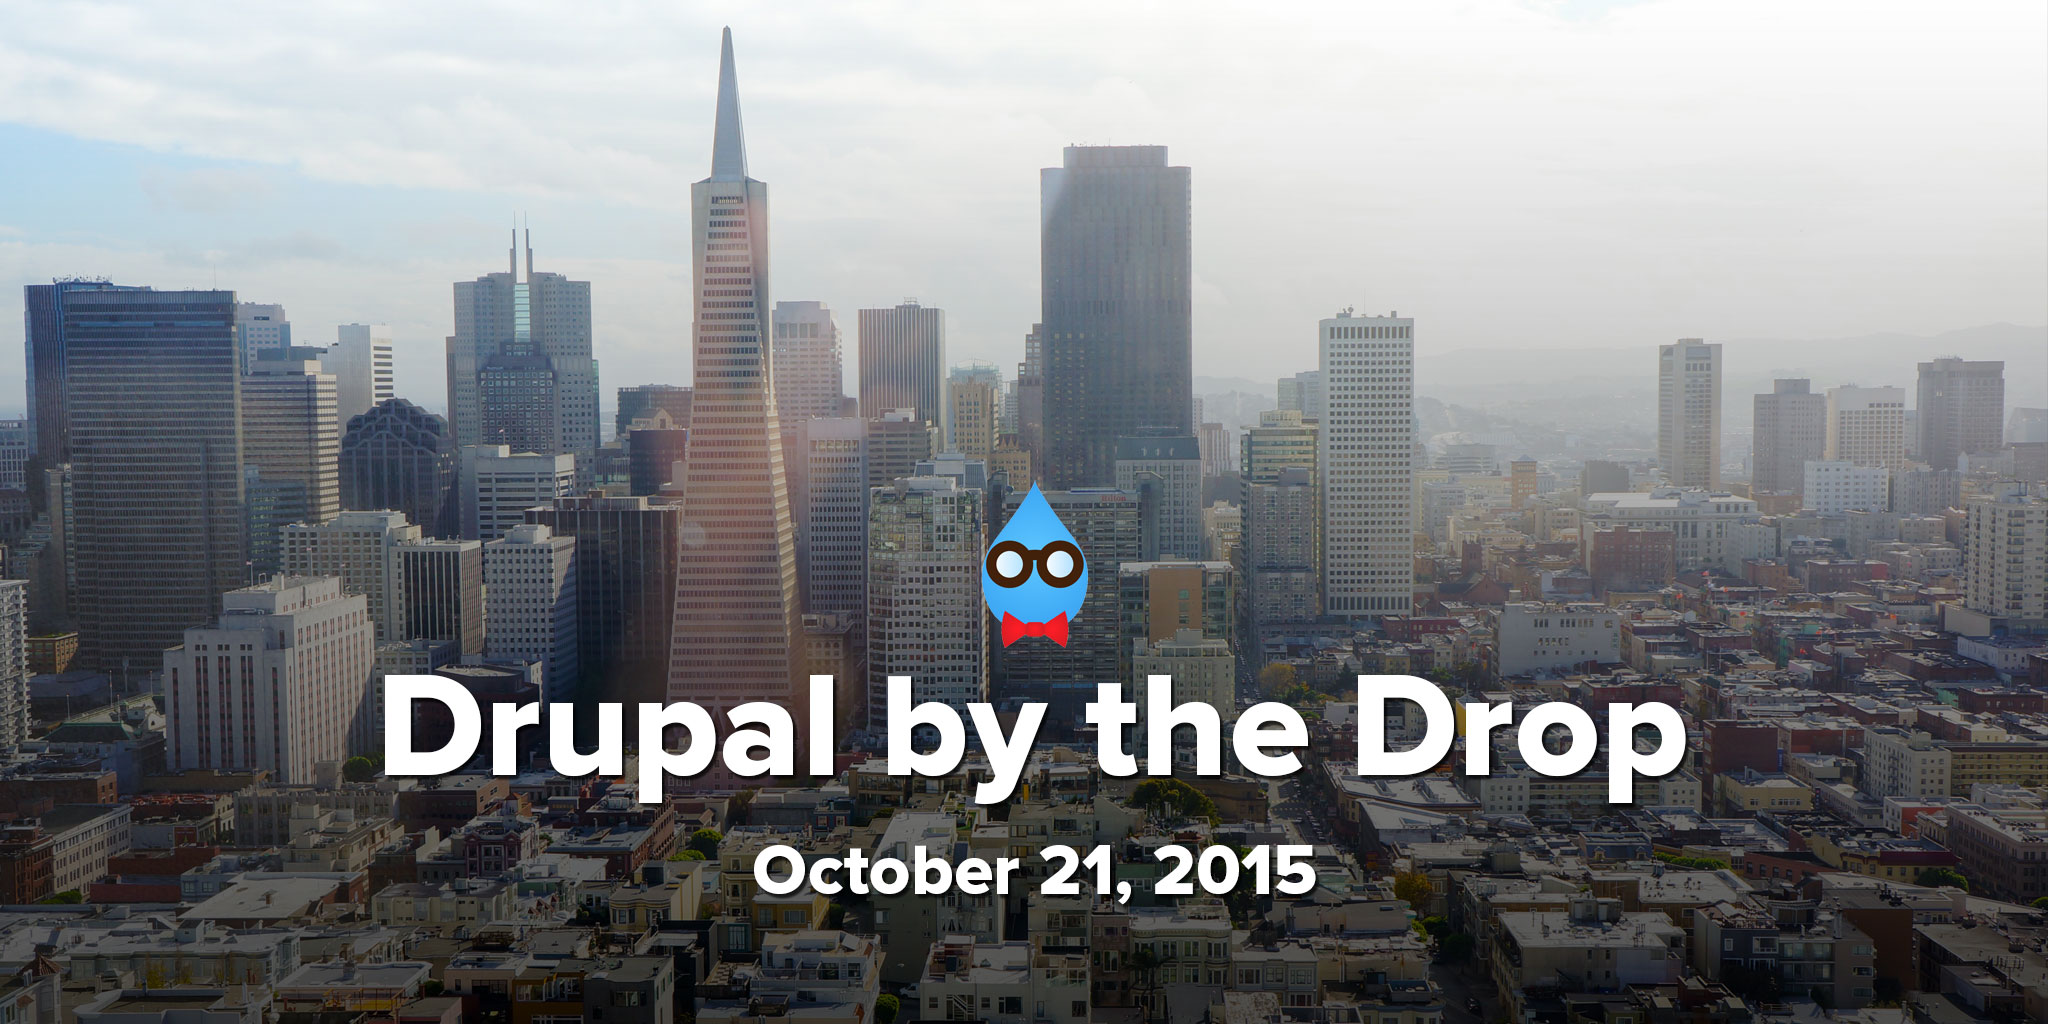 Drupal by the Drop: October 21, 2015